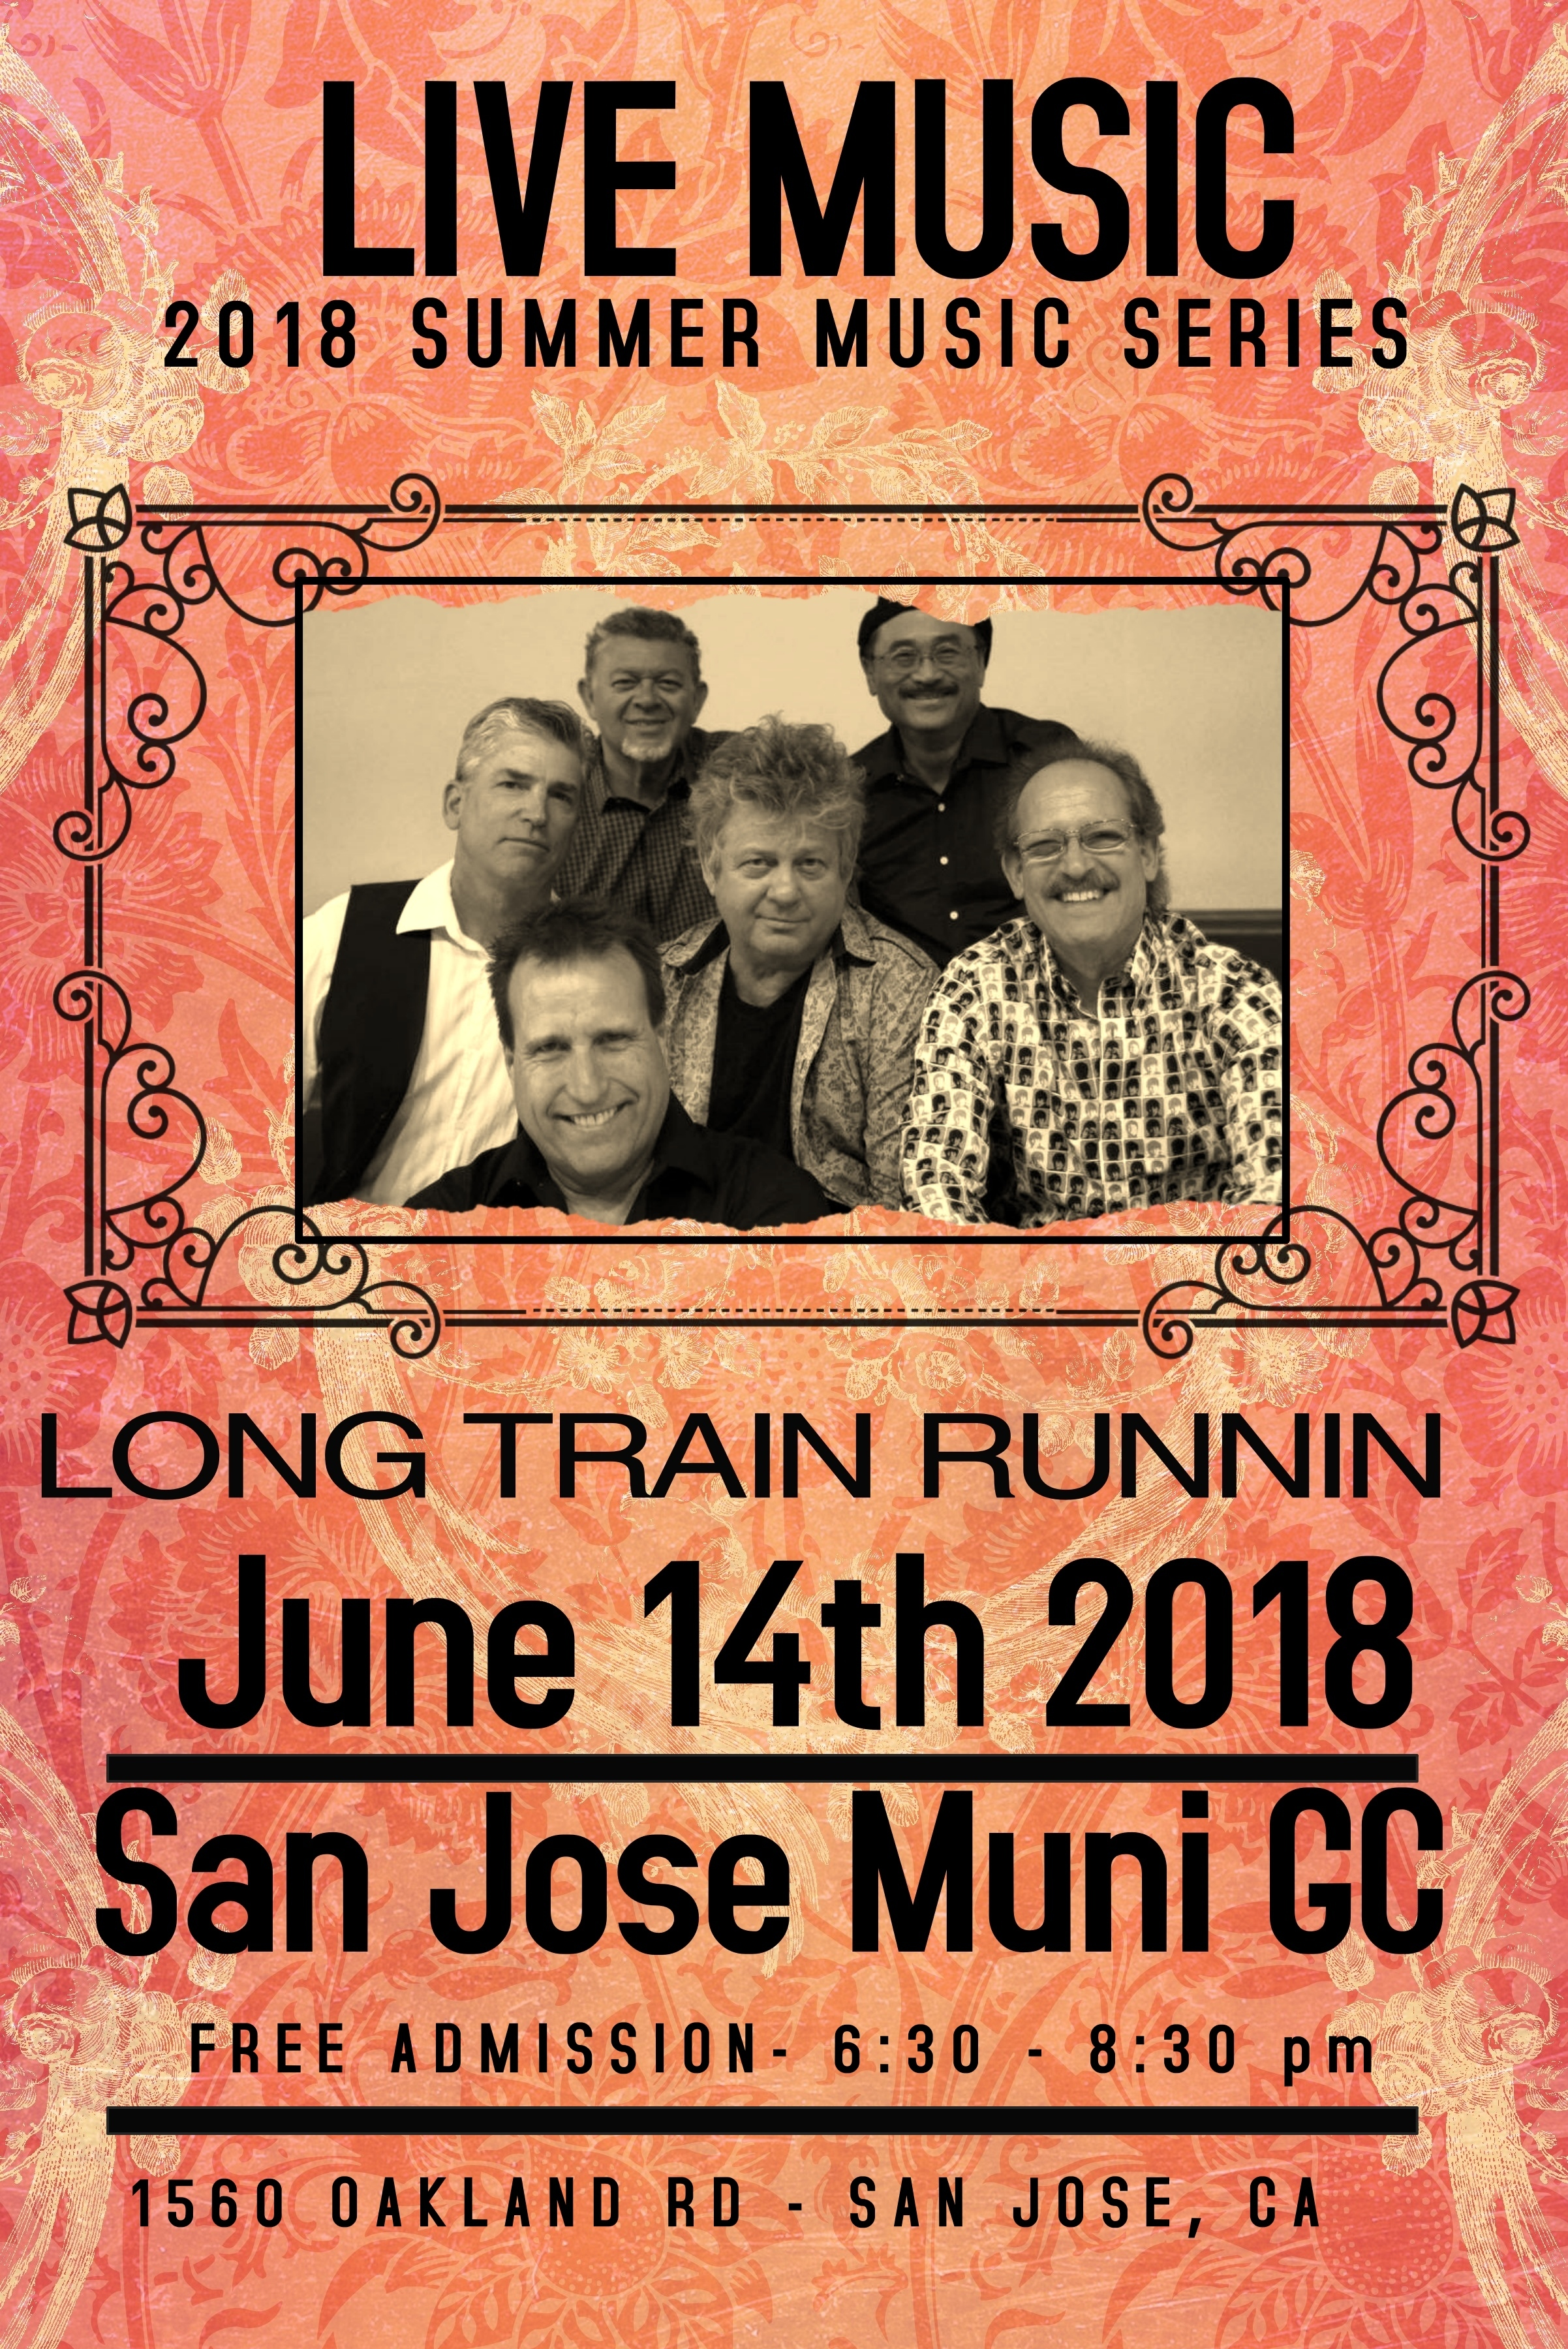 Long Train Runnin 18 Poster2